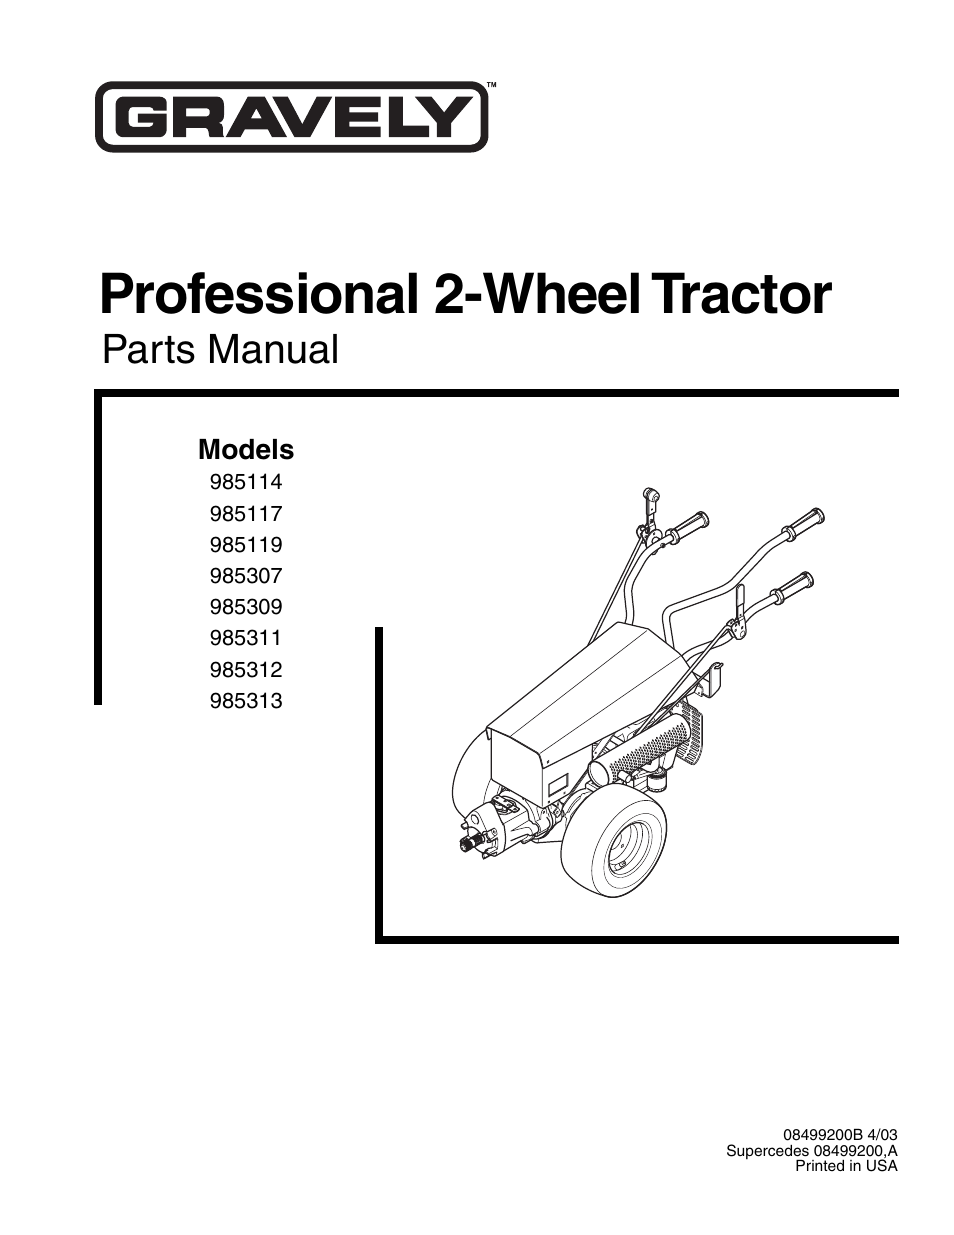 gravely wiring diagrams for model 985119